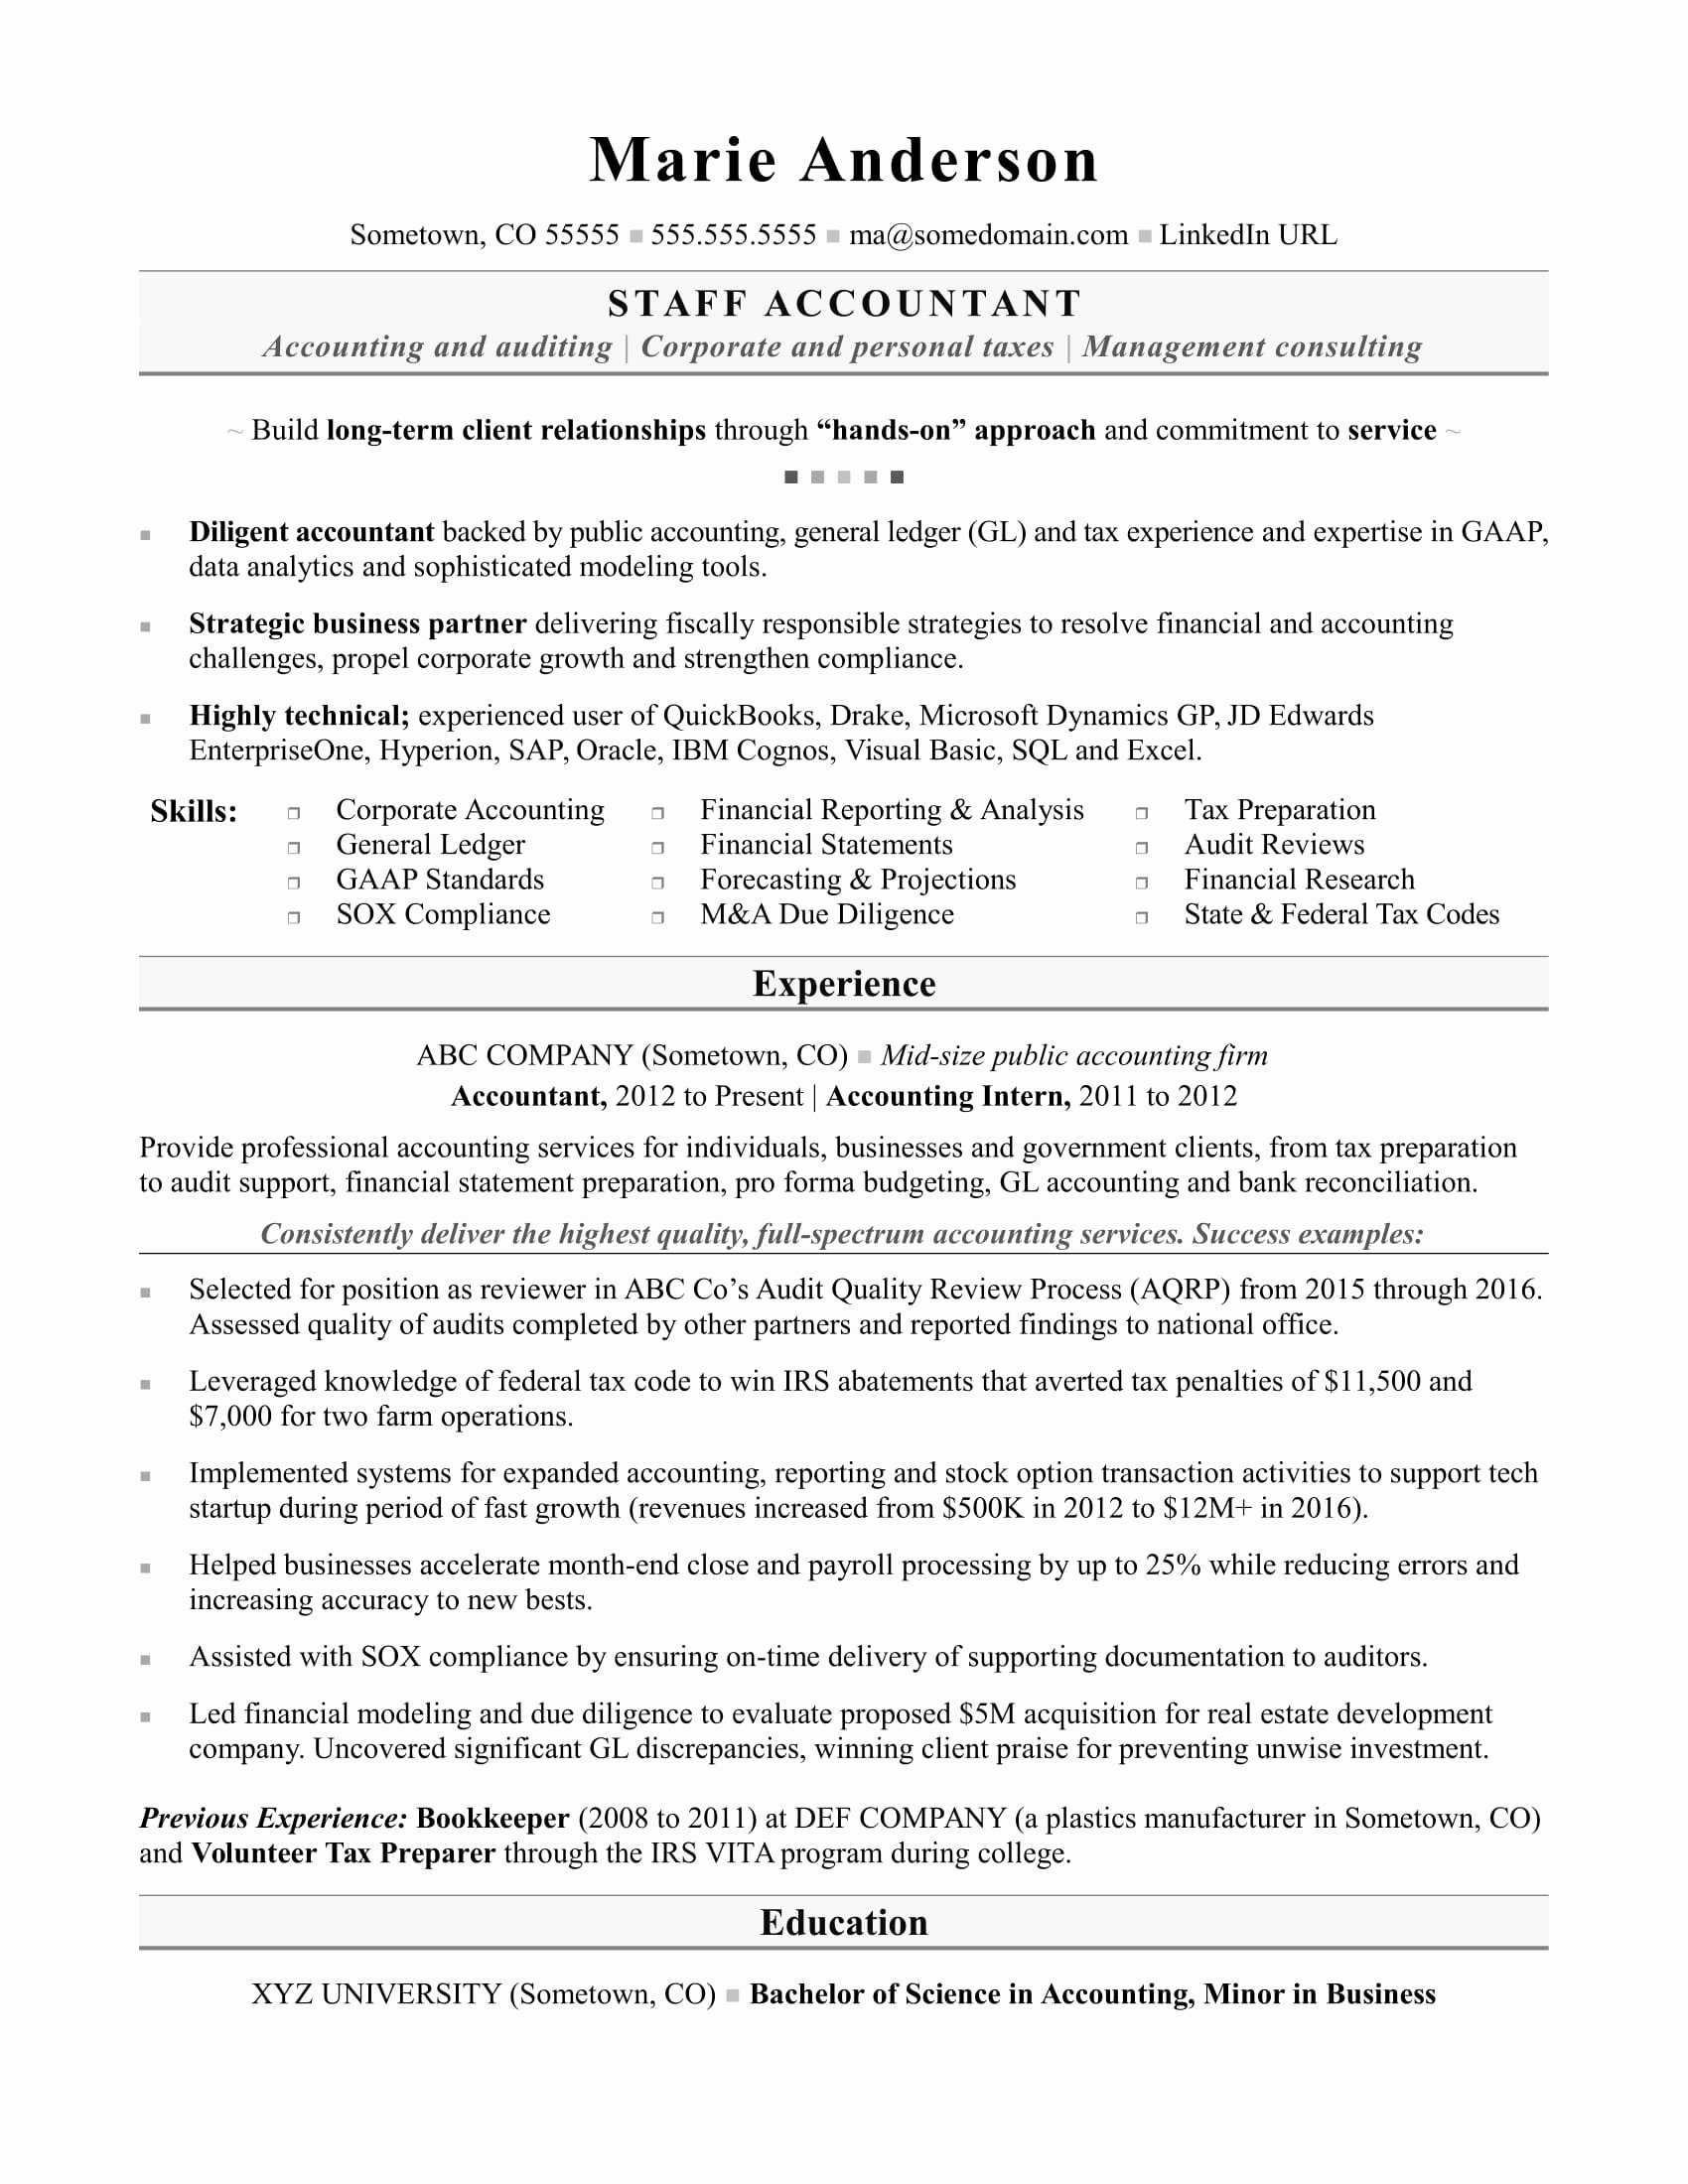 Staff Accountant Resume Summary Inspirational Accounting Resume Sample